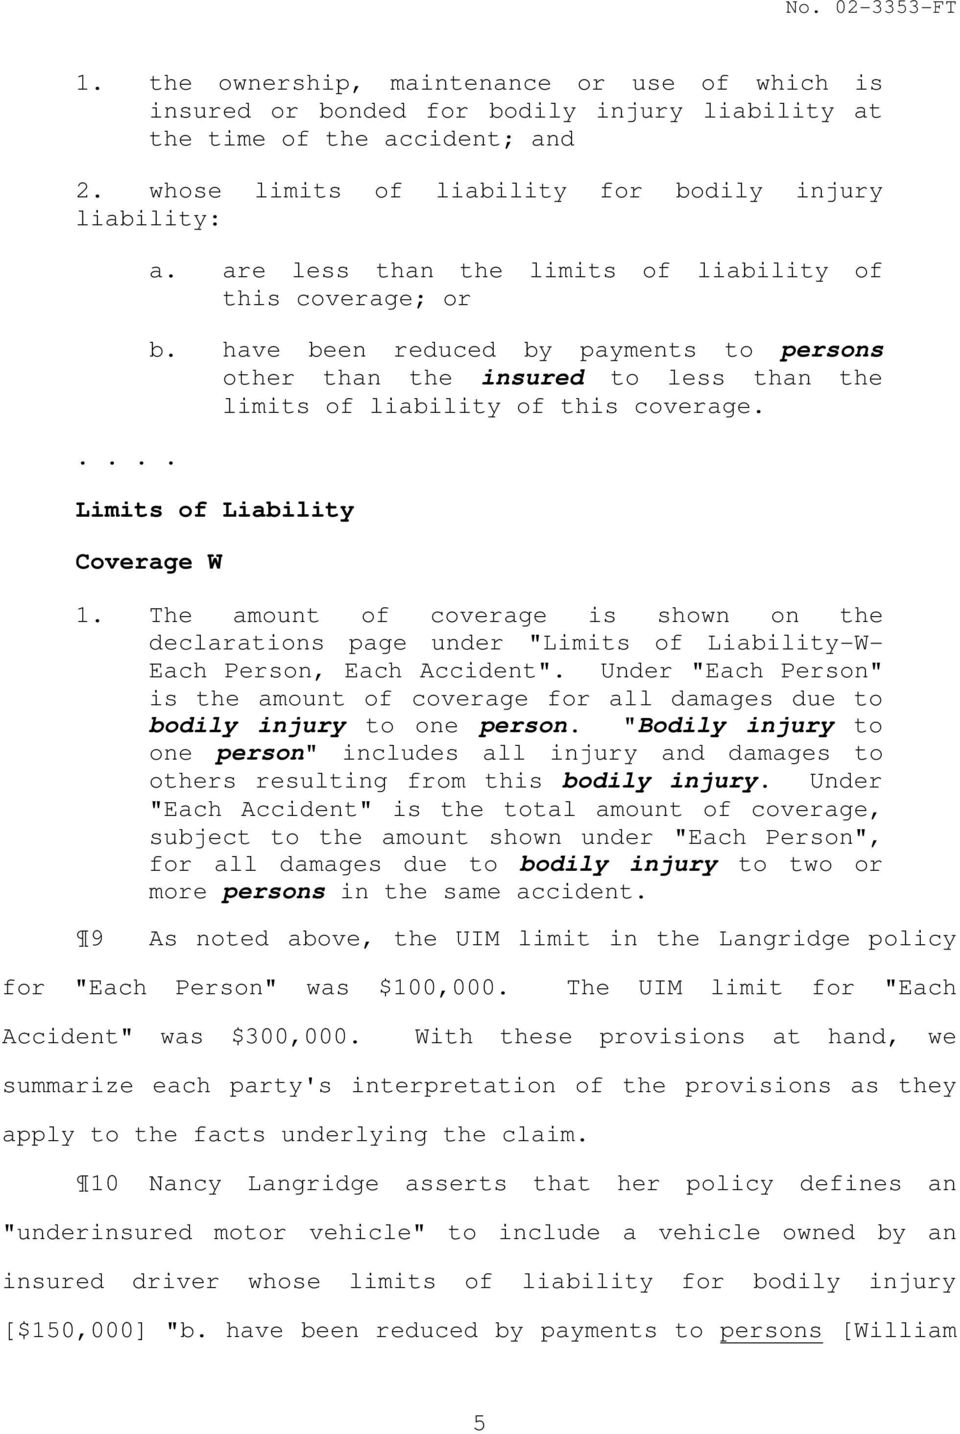 "The amount of coverage is shown on the declarations page under ""Limits of Liability-W- Each Person, Each Accident""."